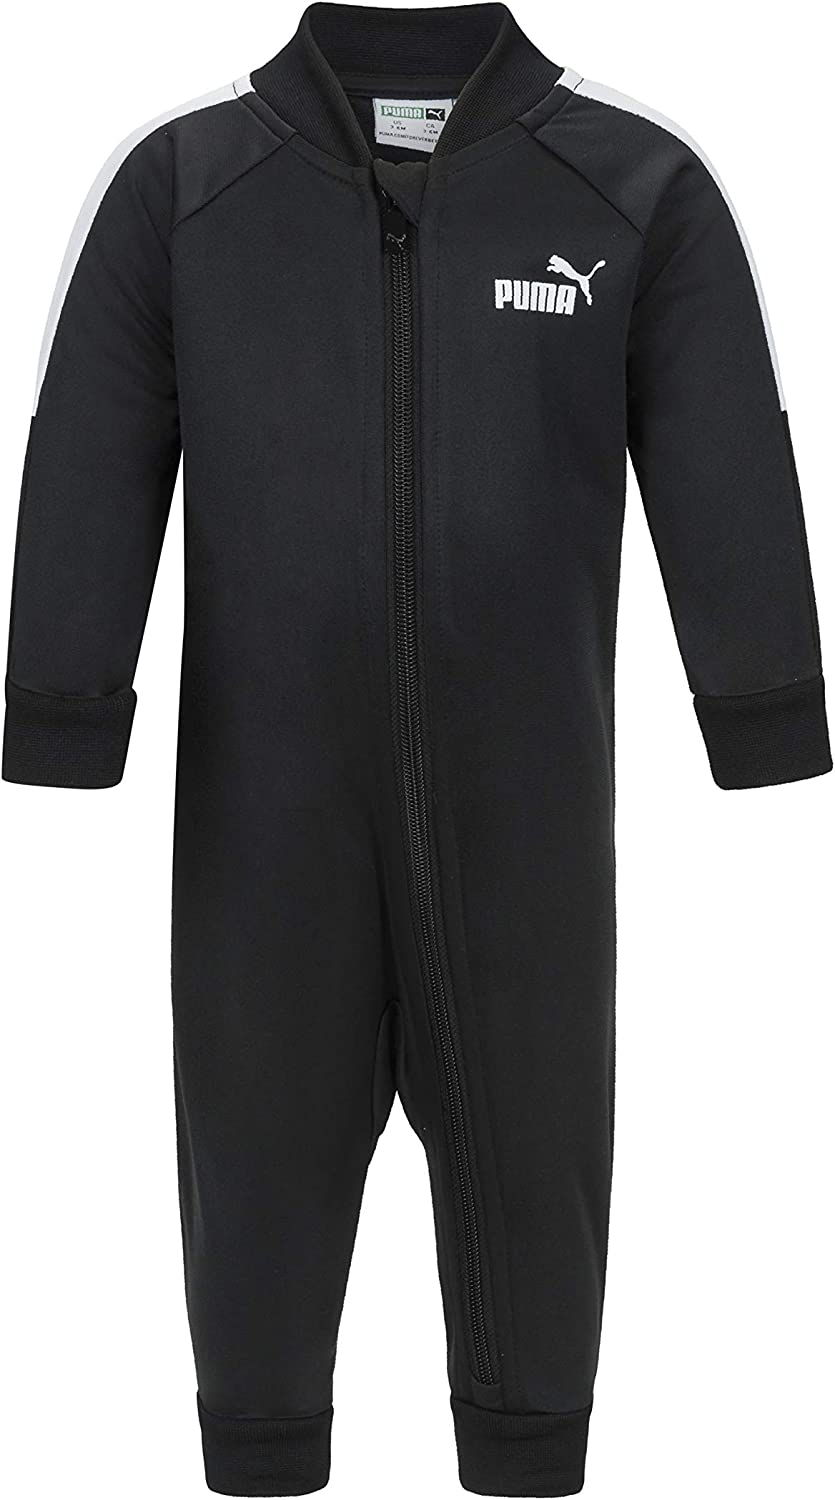 PUMA Baby Boys' Athletic Coverall